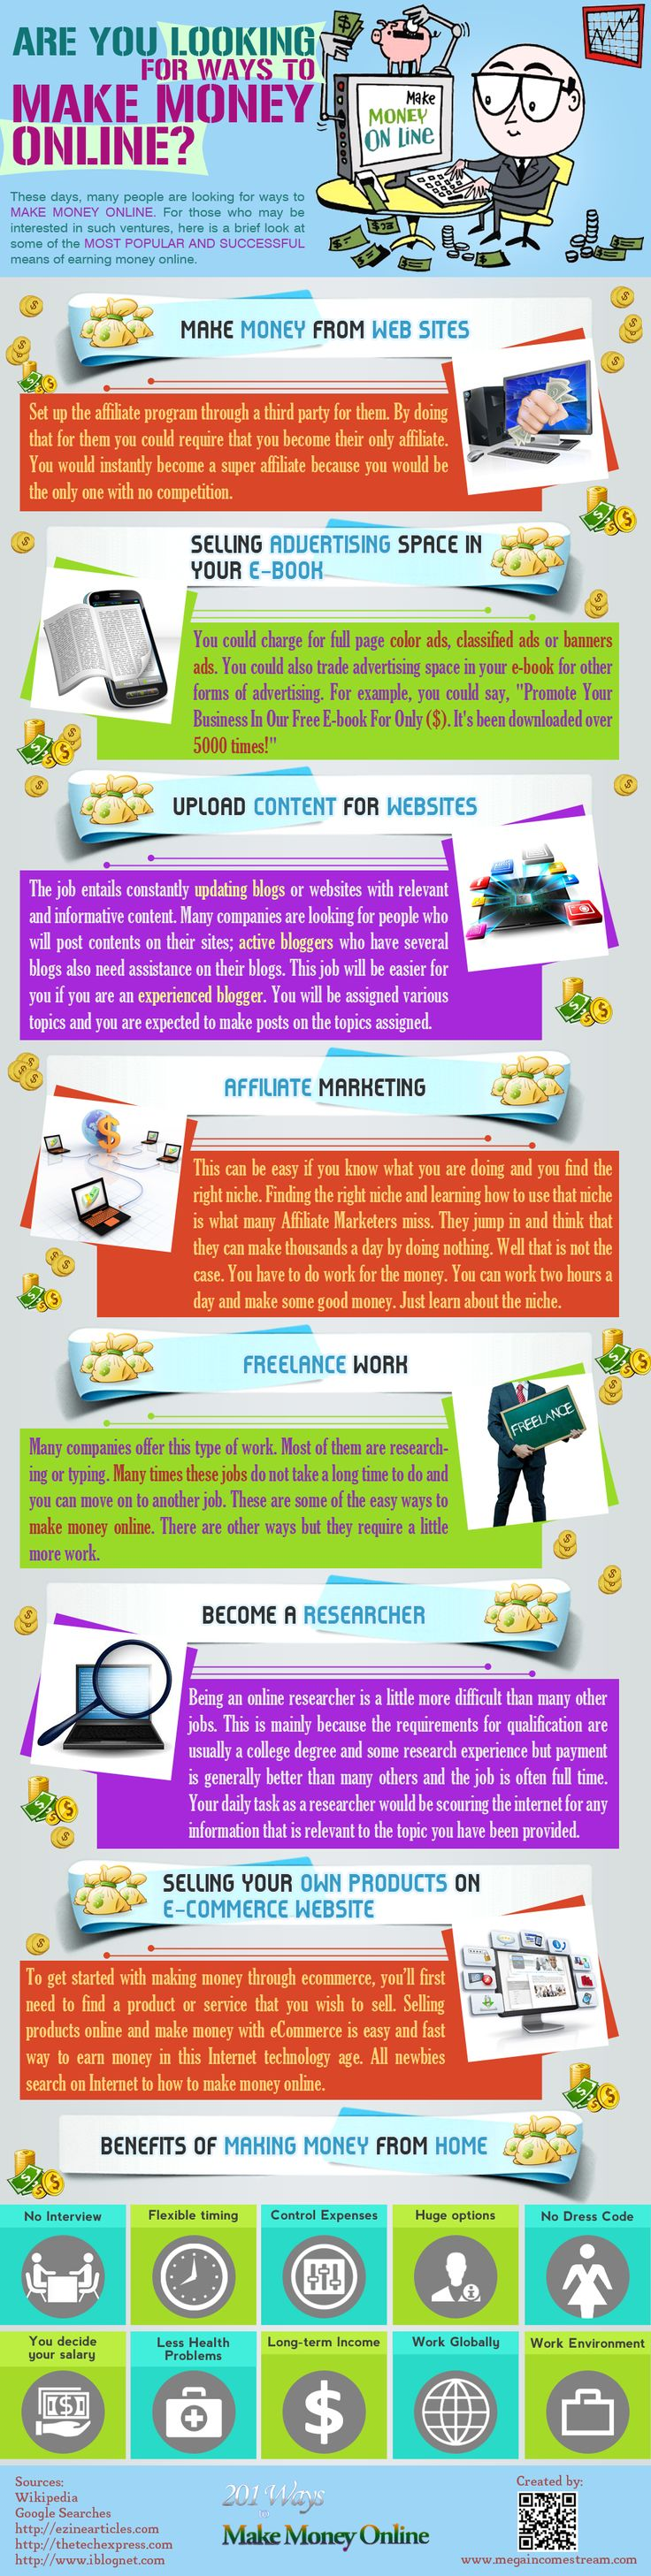 Fast Easy Ways To Make Money Online [infographic]